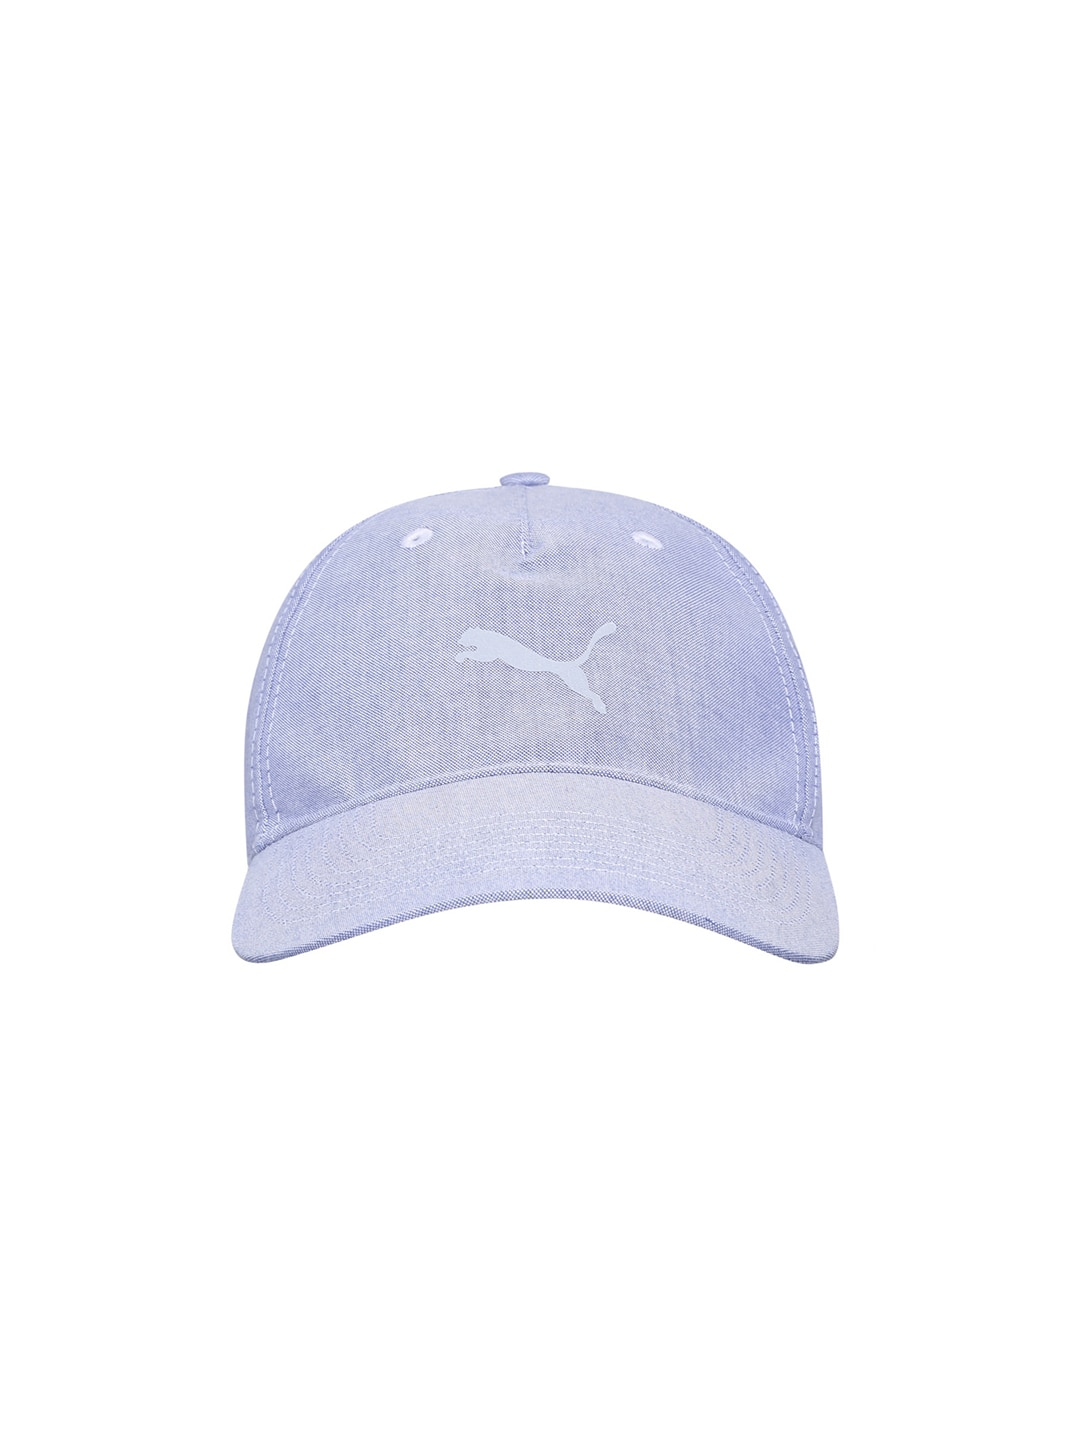 1c1e7e2d9db3e Caps - Buy Caps for Men